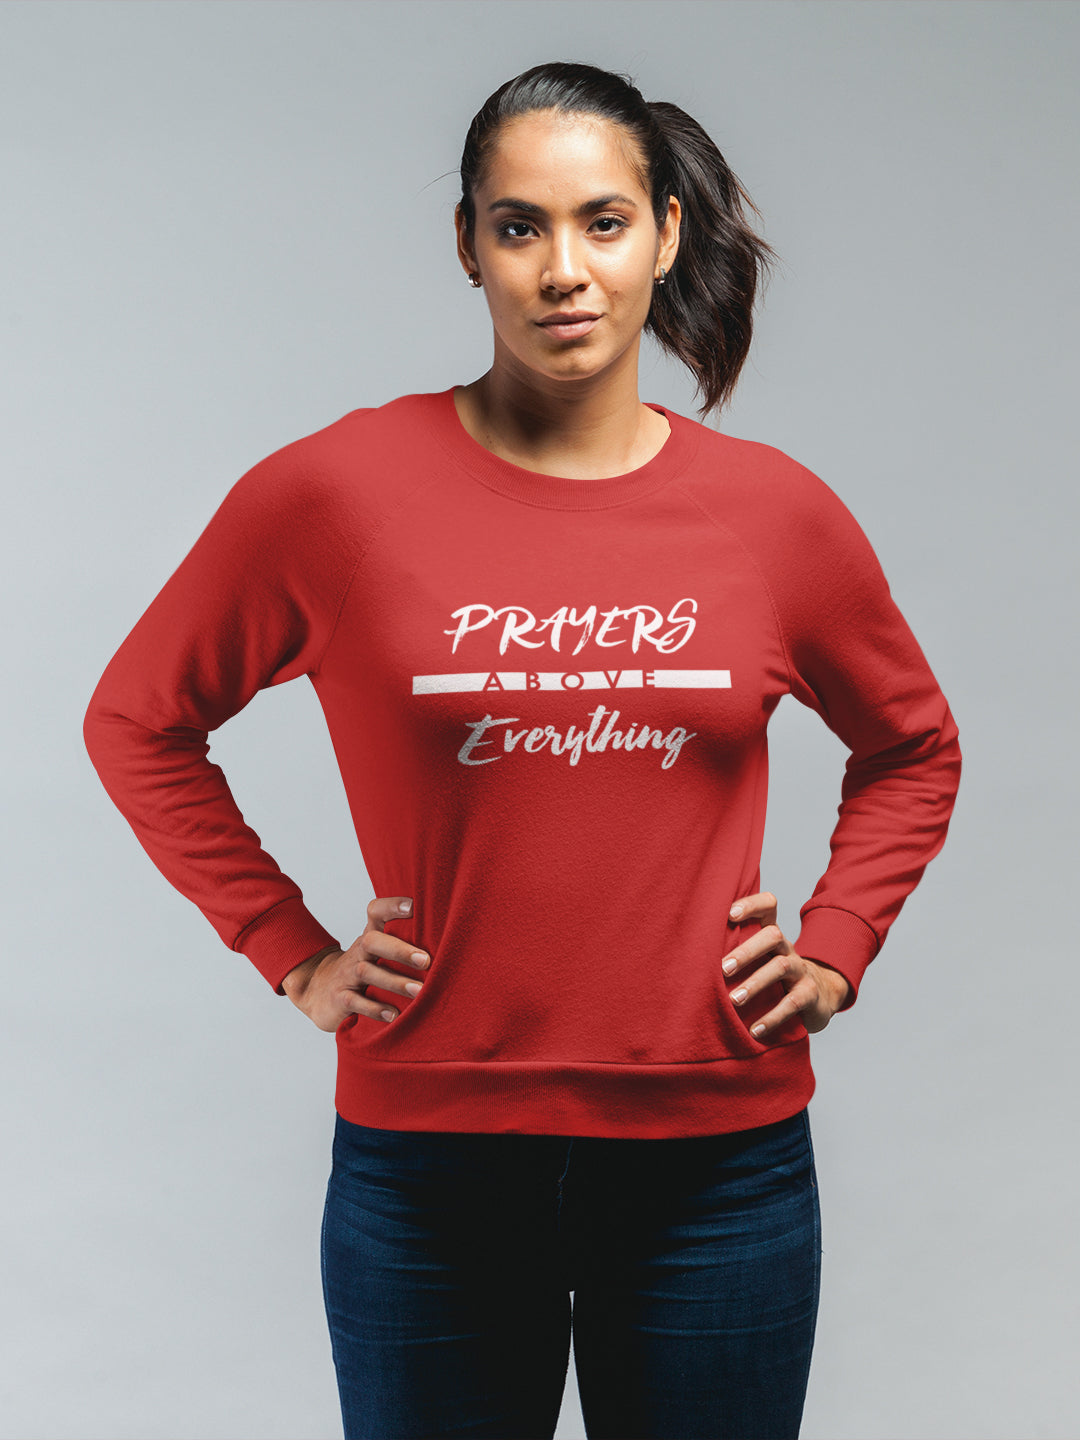 Prayers Above Everything - Women's Sweatshirt-Made In Agapé